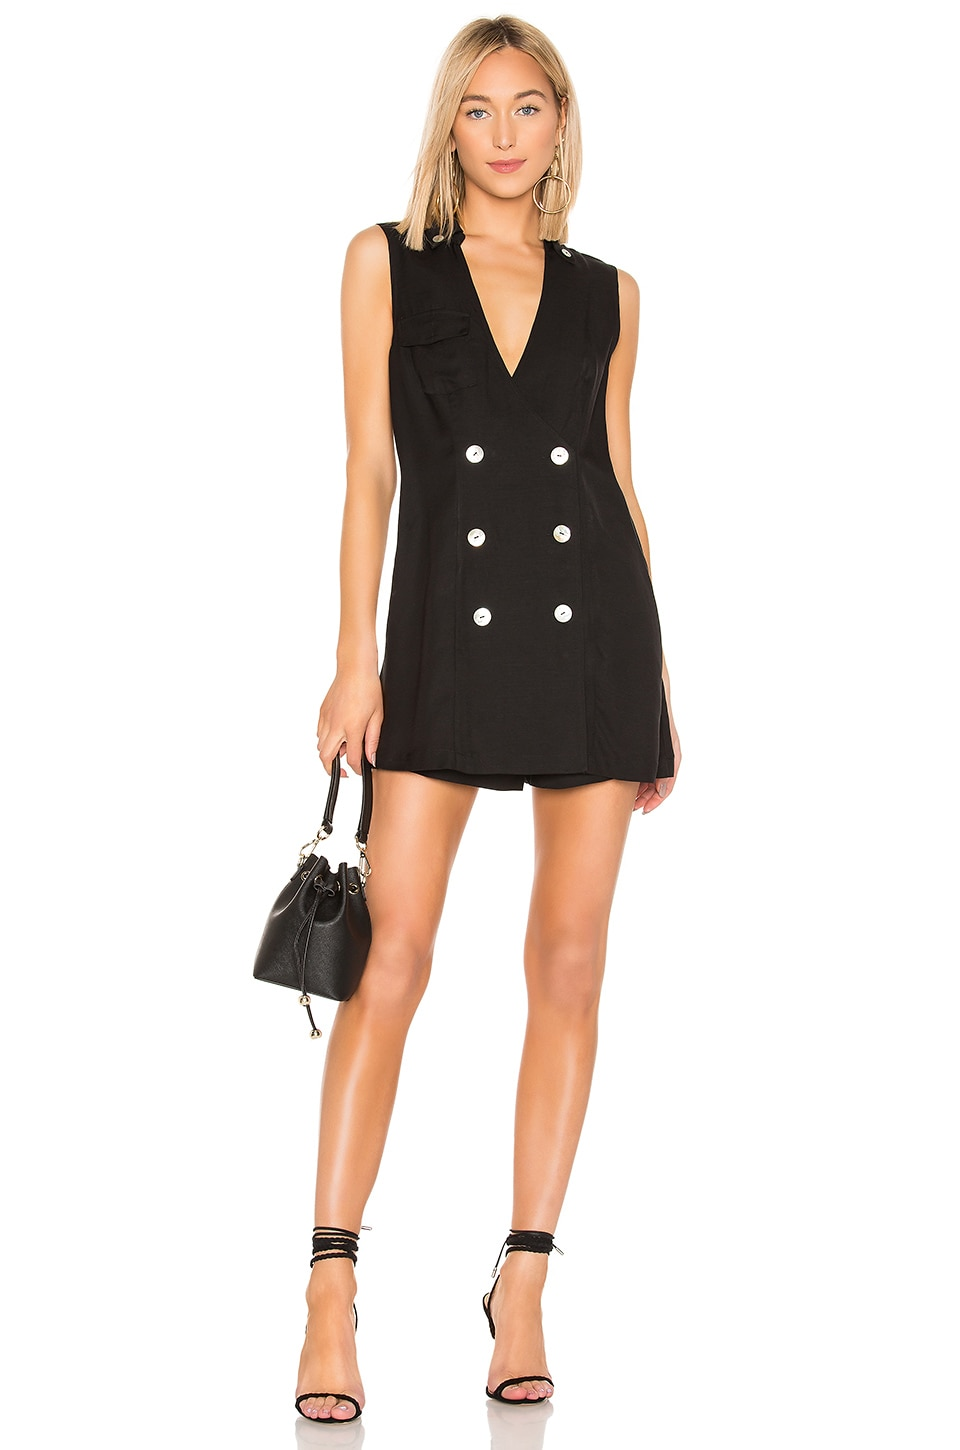 L'Academie The Julie Romper in Black